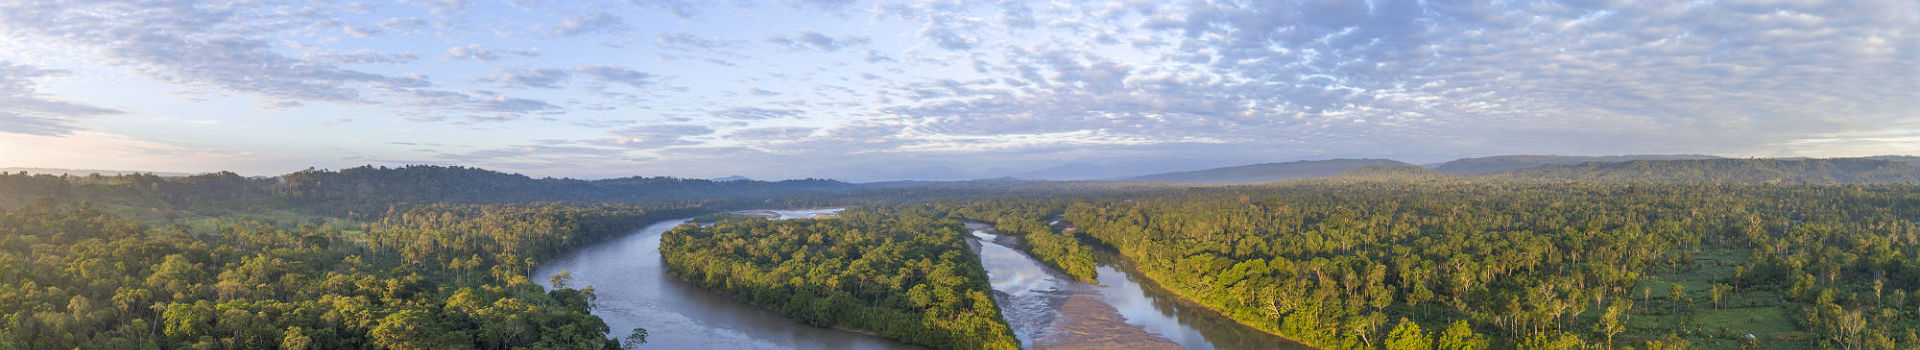 Aerial panorama of the Rio Napo at dawn in the Ecuadorian Amazon with the first rays of the sun illuminating the forest canopy